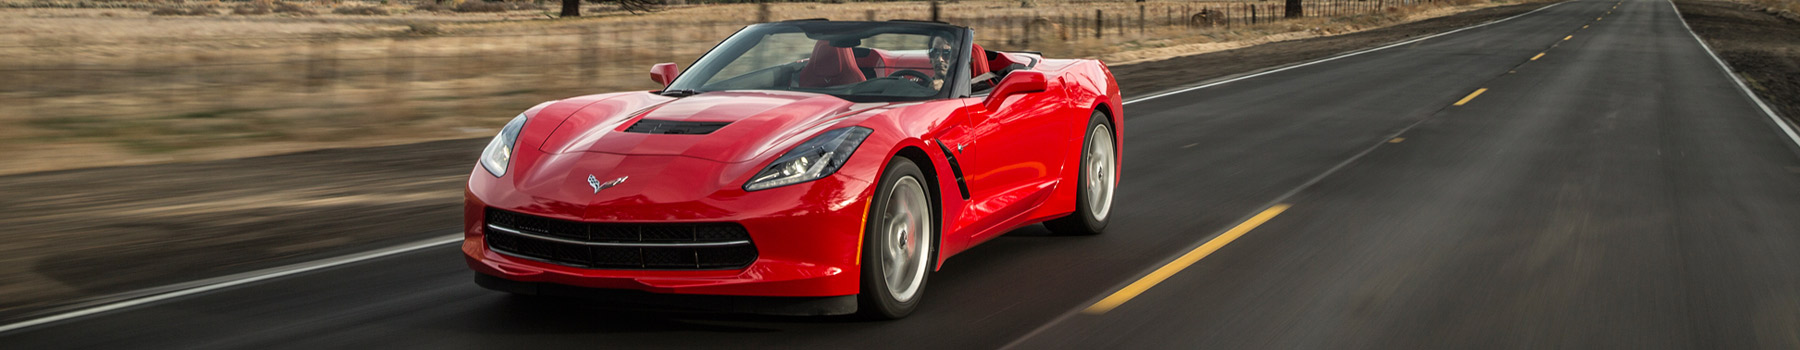 corvette club bylaws